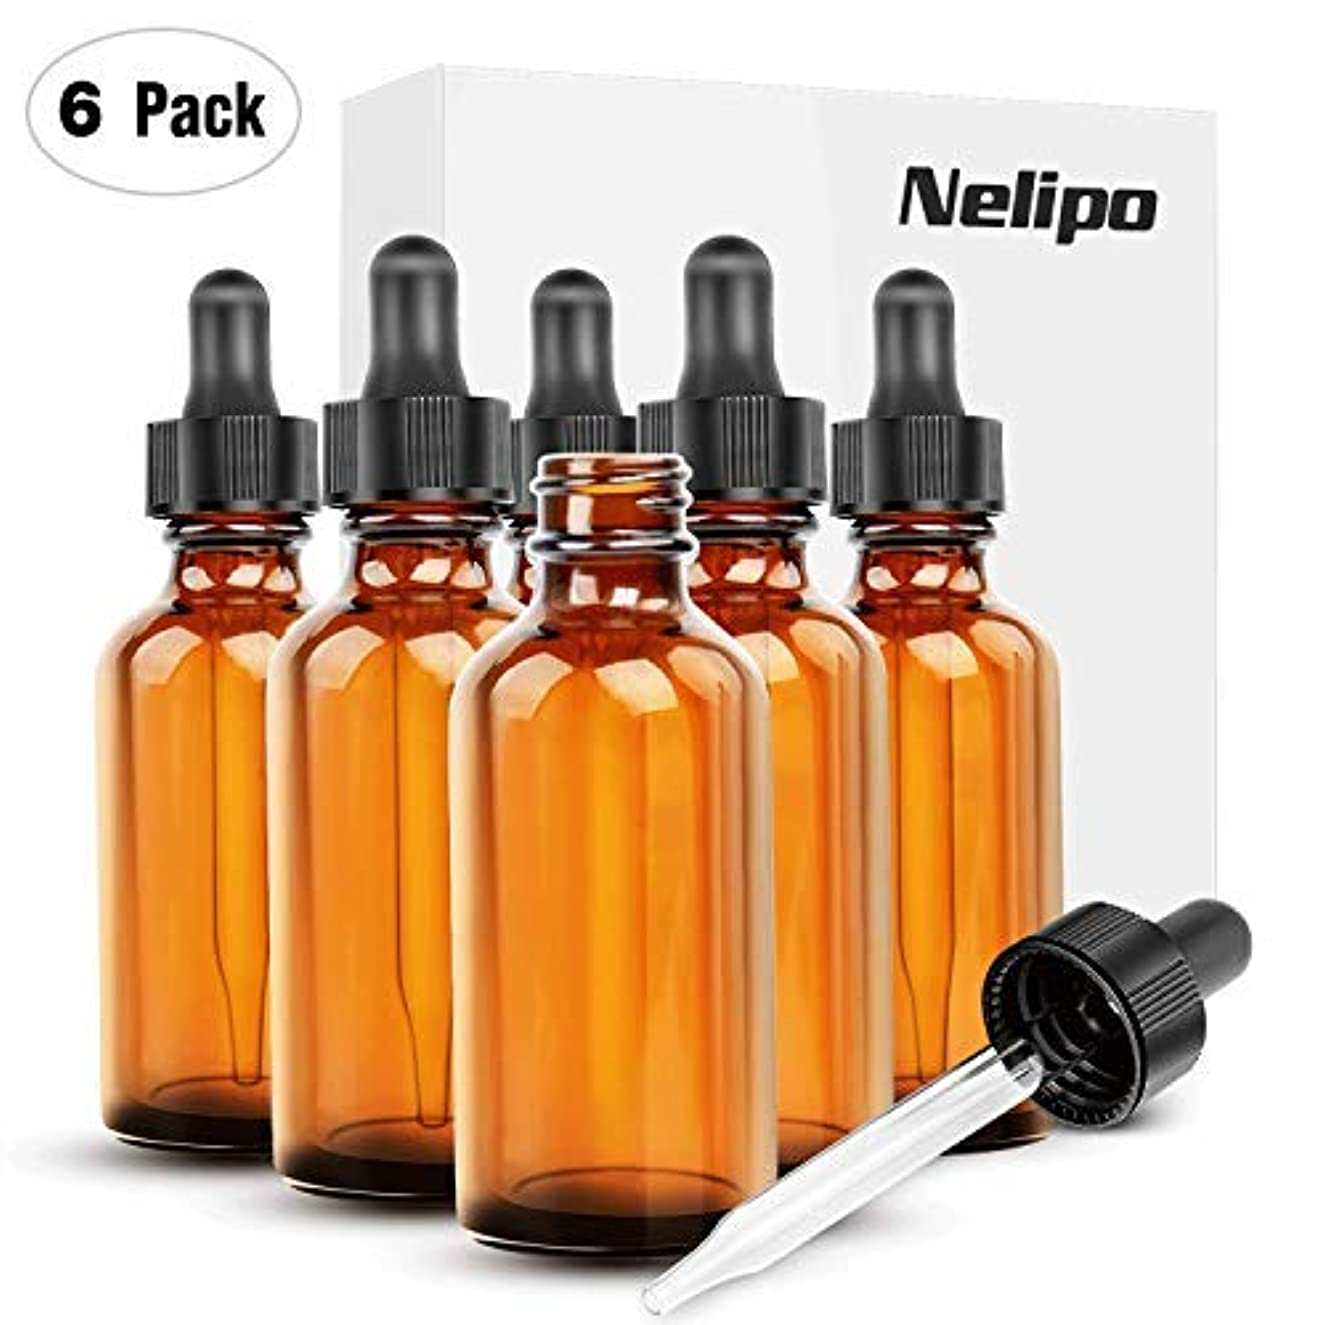 典型的な余裕がある部分Nelipo 2oz Amber Glass Bottles for Essential Oils with Glass Eye Dropper - Pack of 6 [並行輸入品]